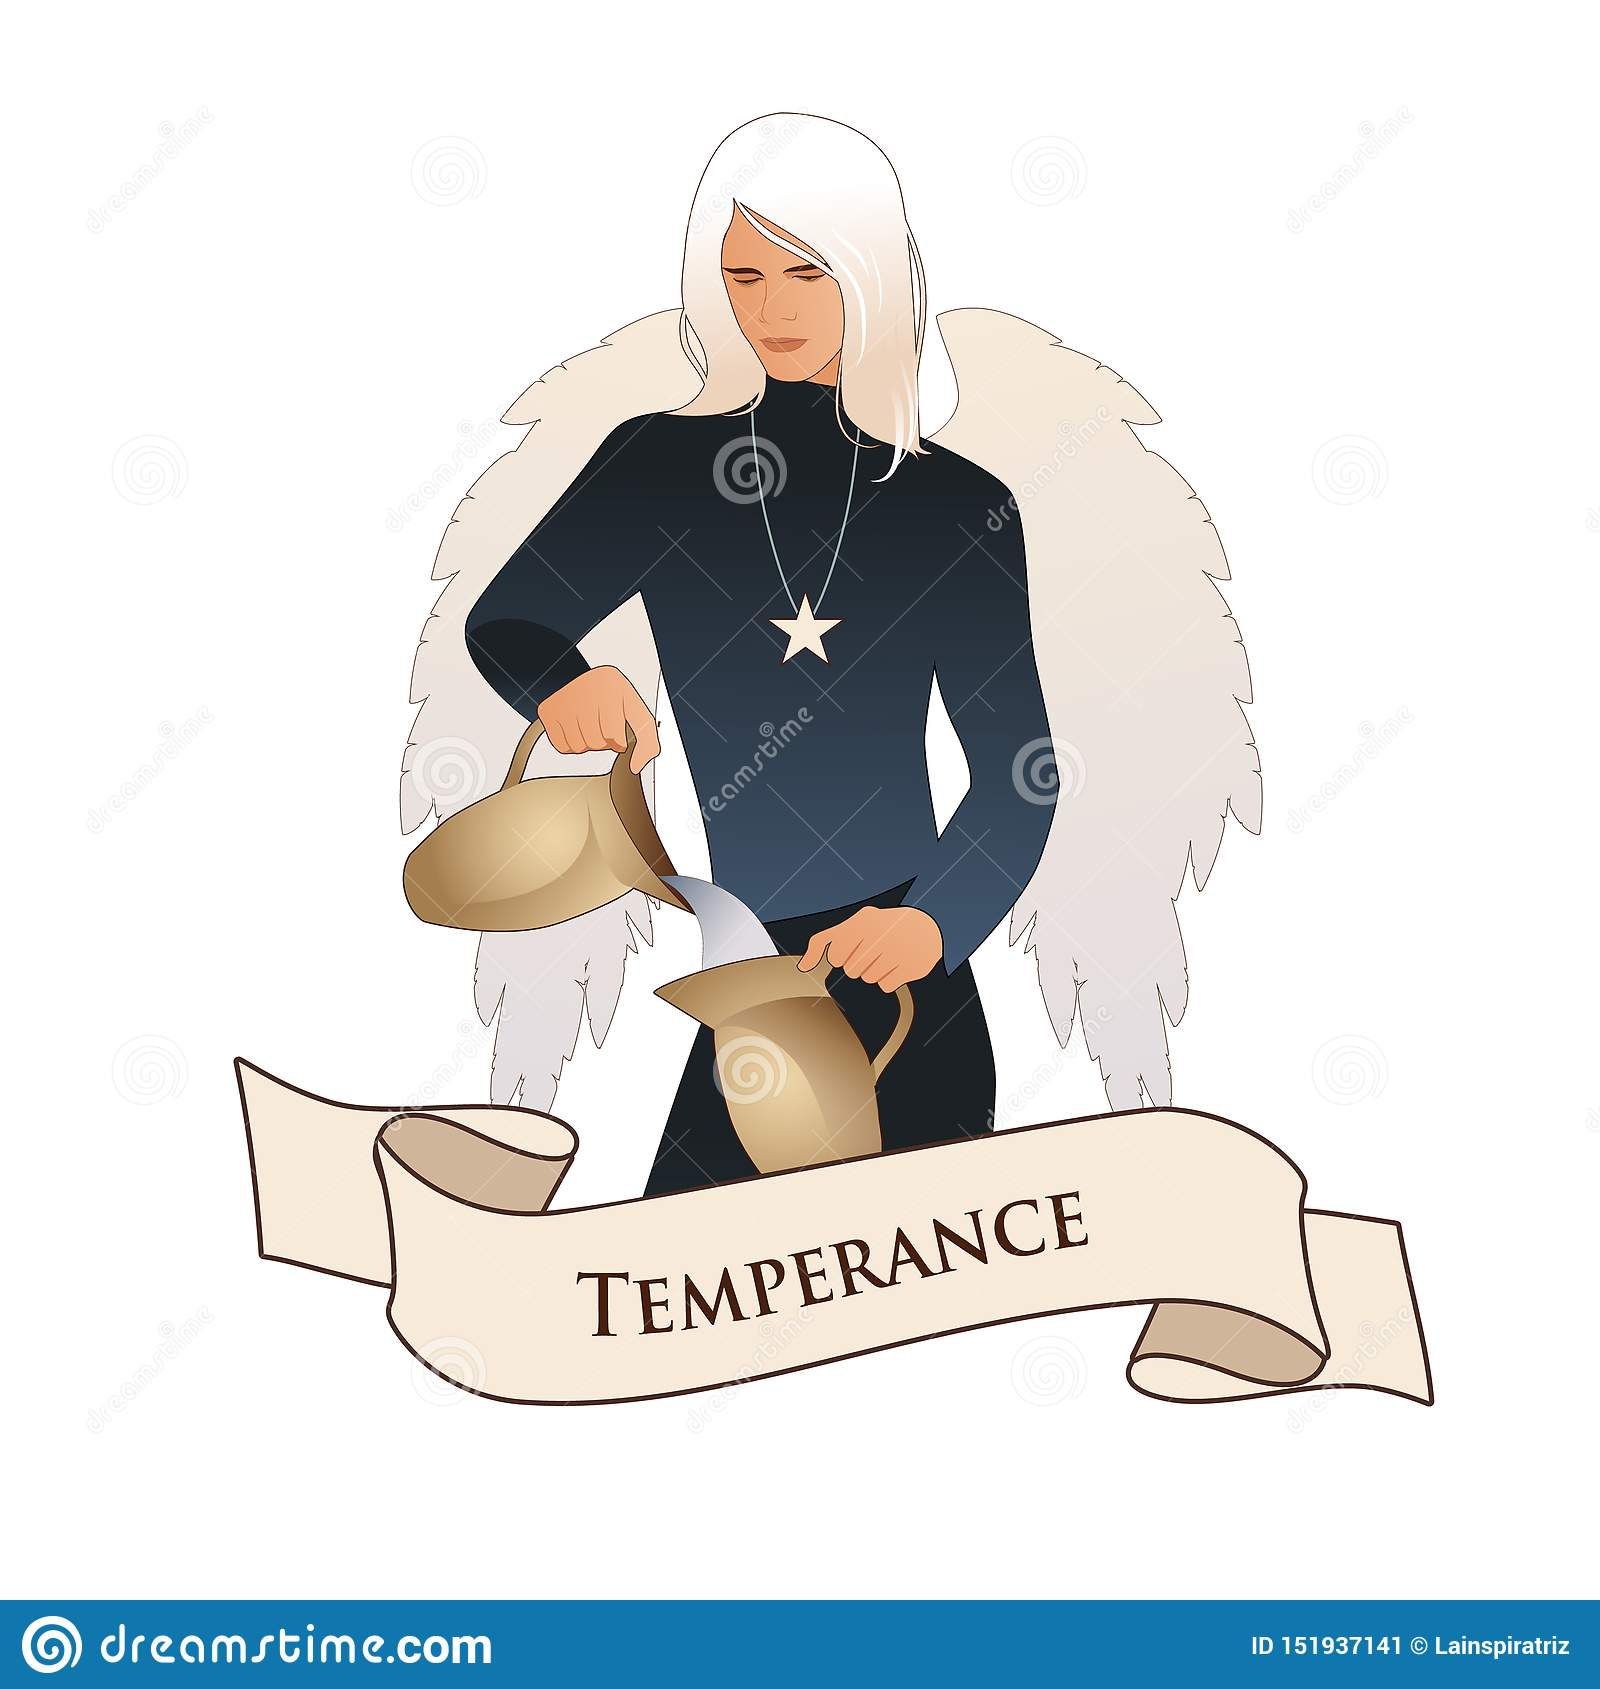 Major Arcana Emblem Tarot Card. Temperance. Angel with appearance and clothes of young man, great wings, hair fair, pouring water